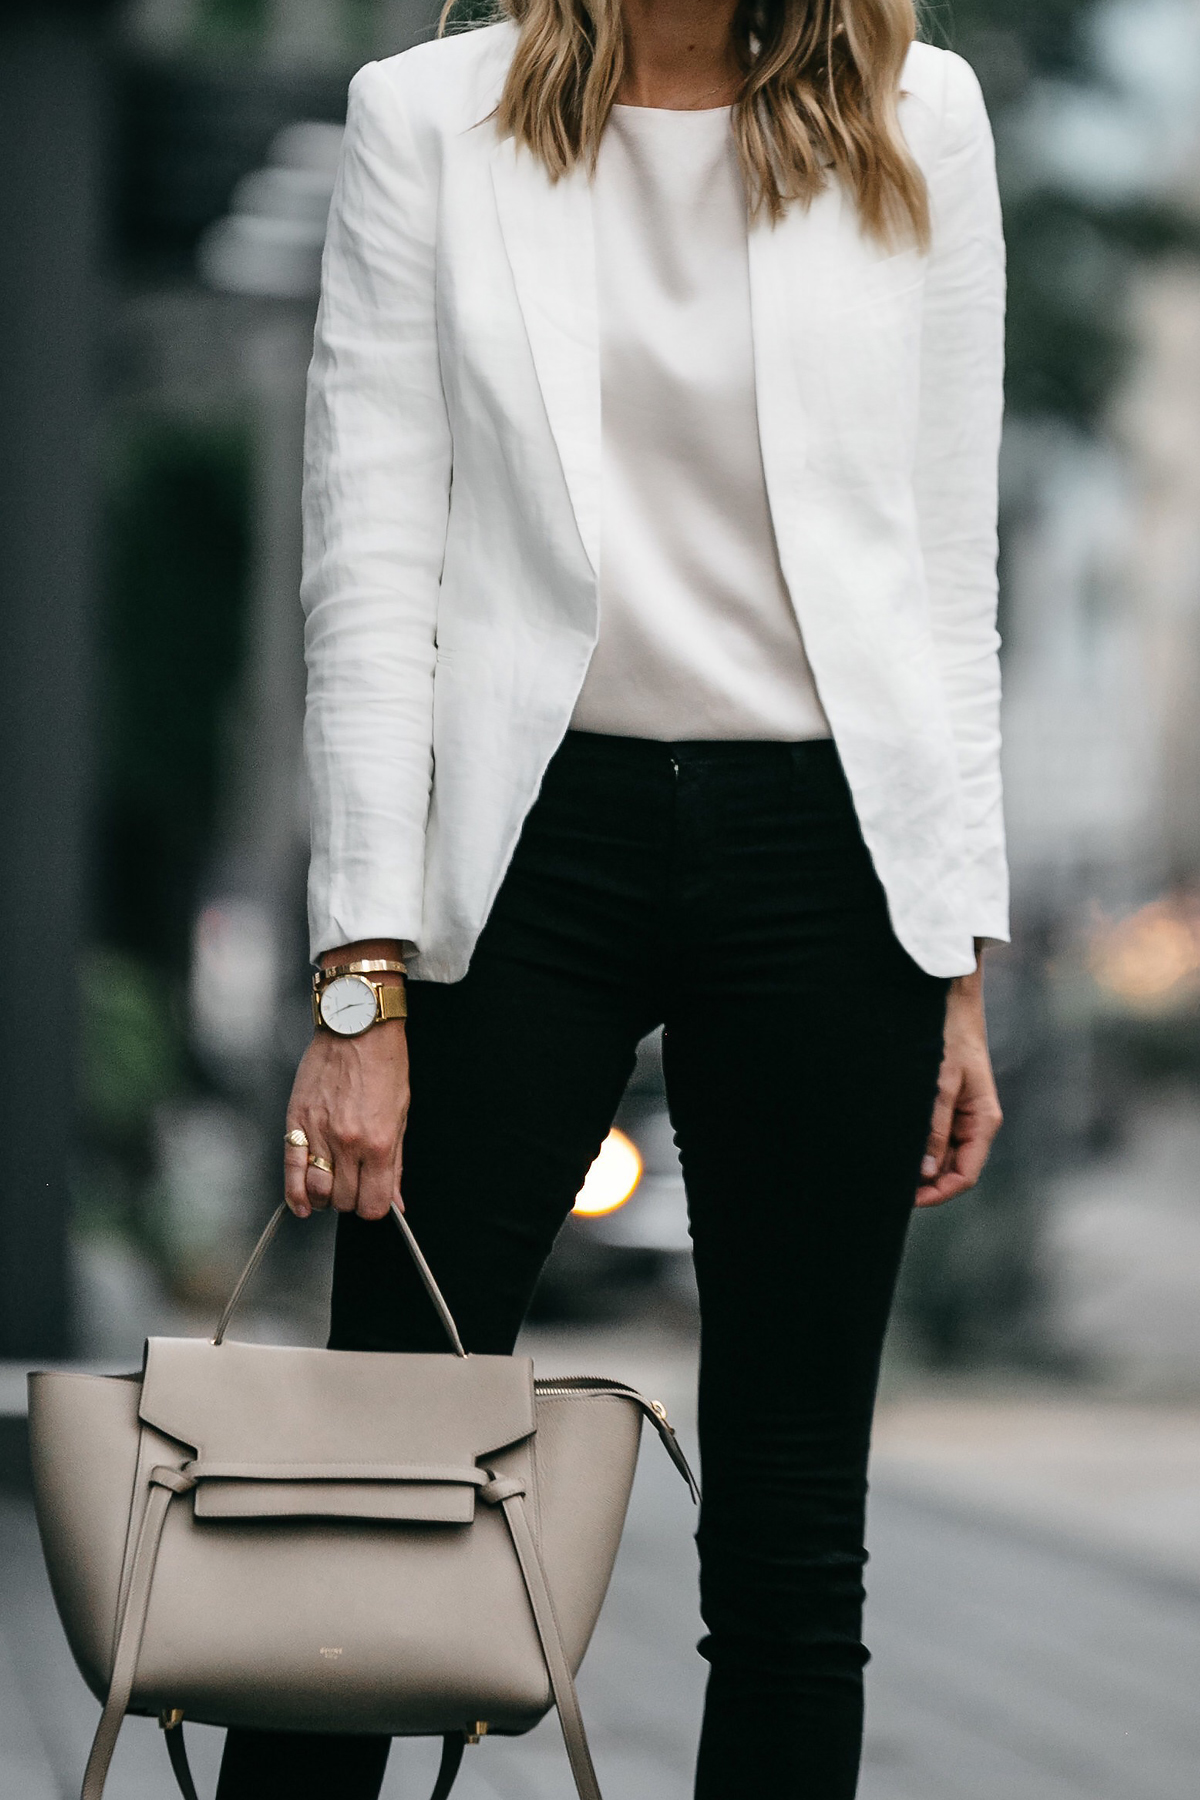 Stitch Fix Outfit Joie White Blazer J Brand Black Skinny Jeans Celine Belt Handbag Fashion Jackson Dallas Blogger Fashion Blogger Street Style